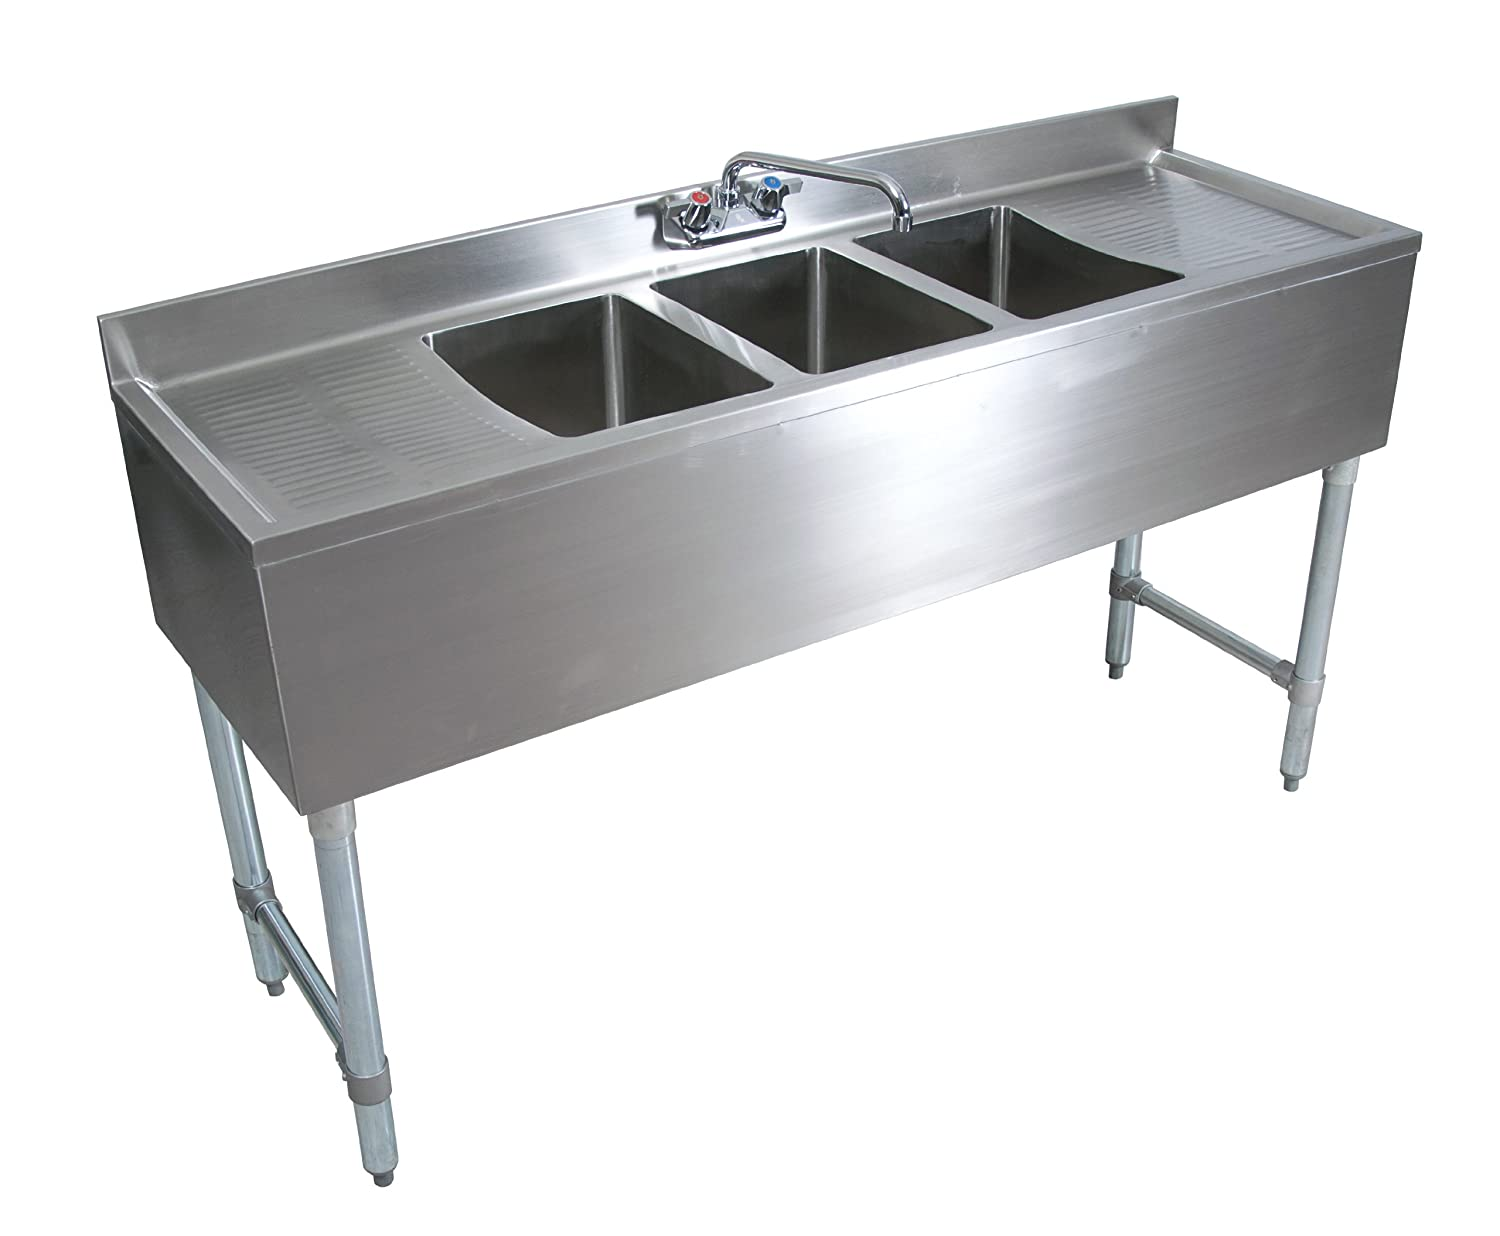 Amazon.com: John Boos EUB3S60-2D Stainless Steel Underbar Sink, 3 ...